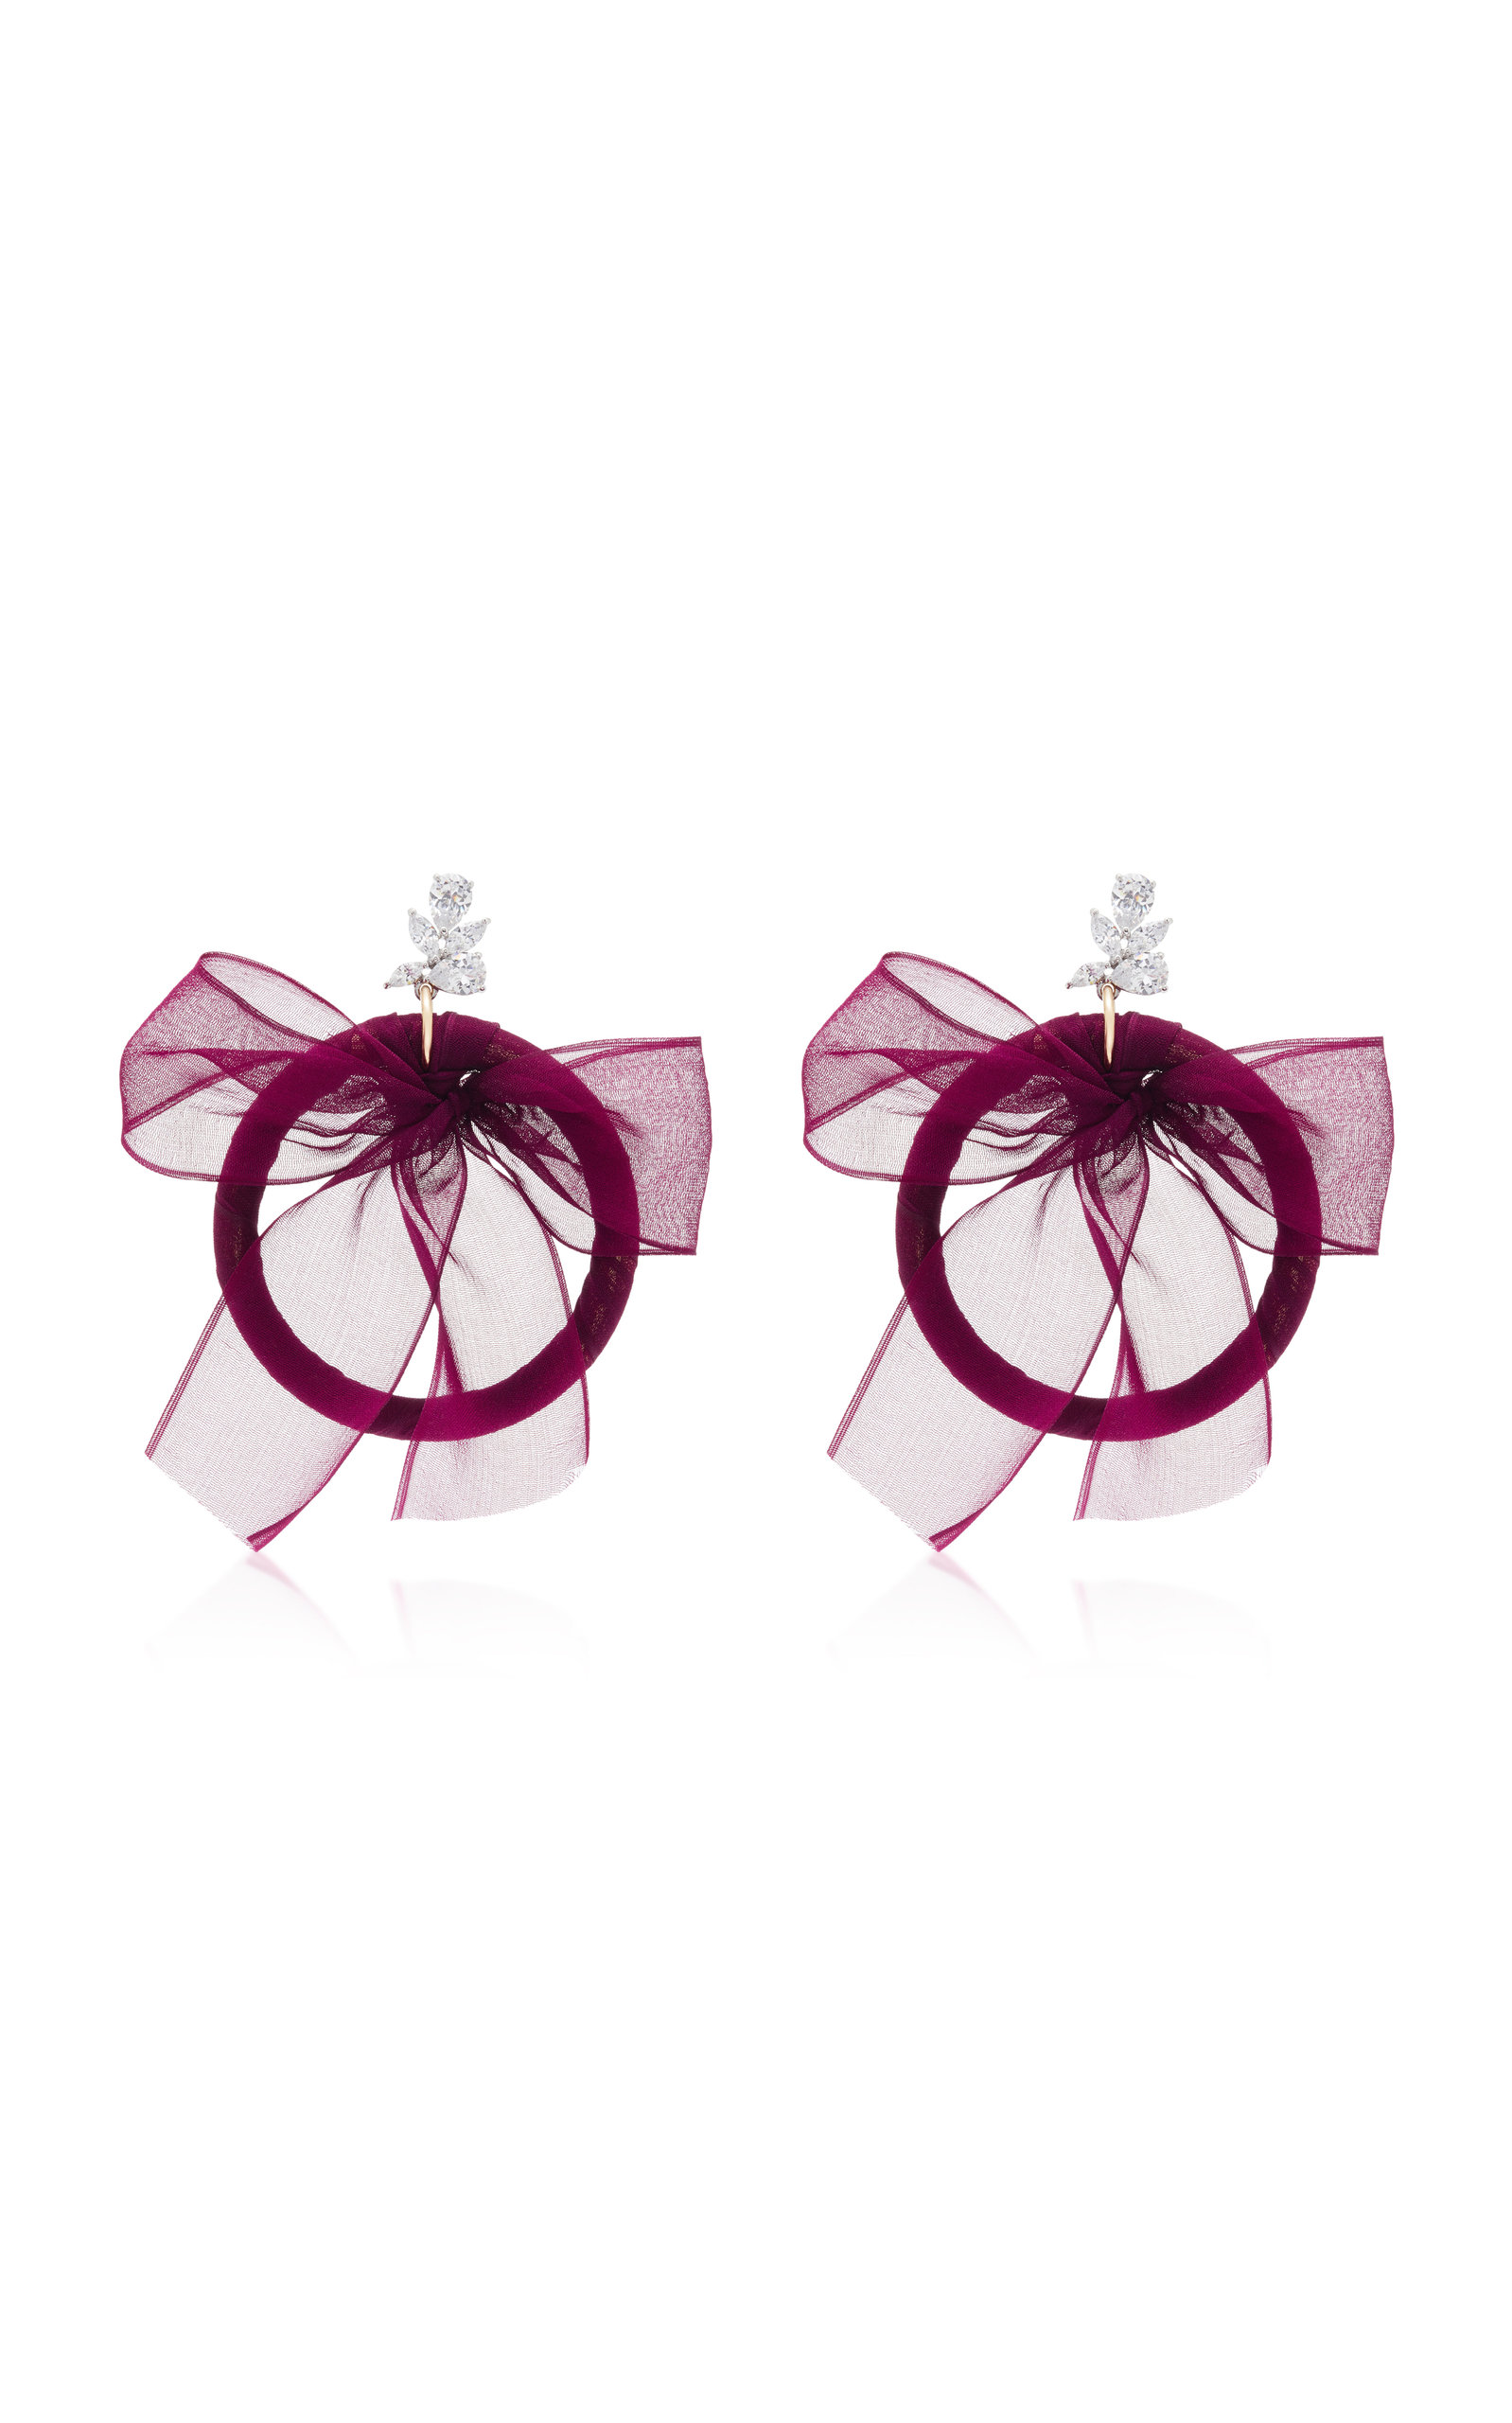 Crystal Silk And Silver-Plated Hoop Earrings Fallon sd7Nf1K7